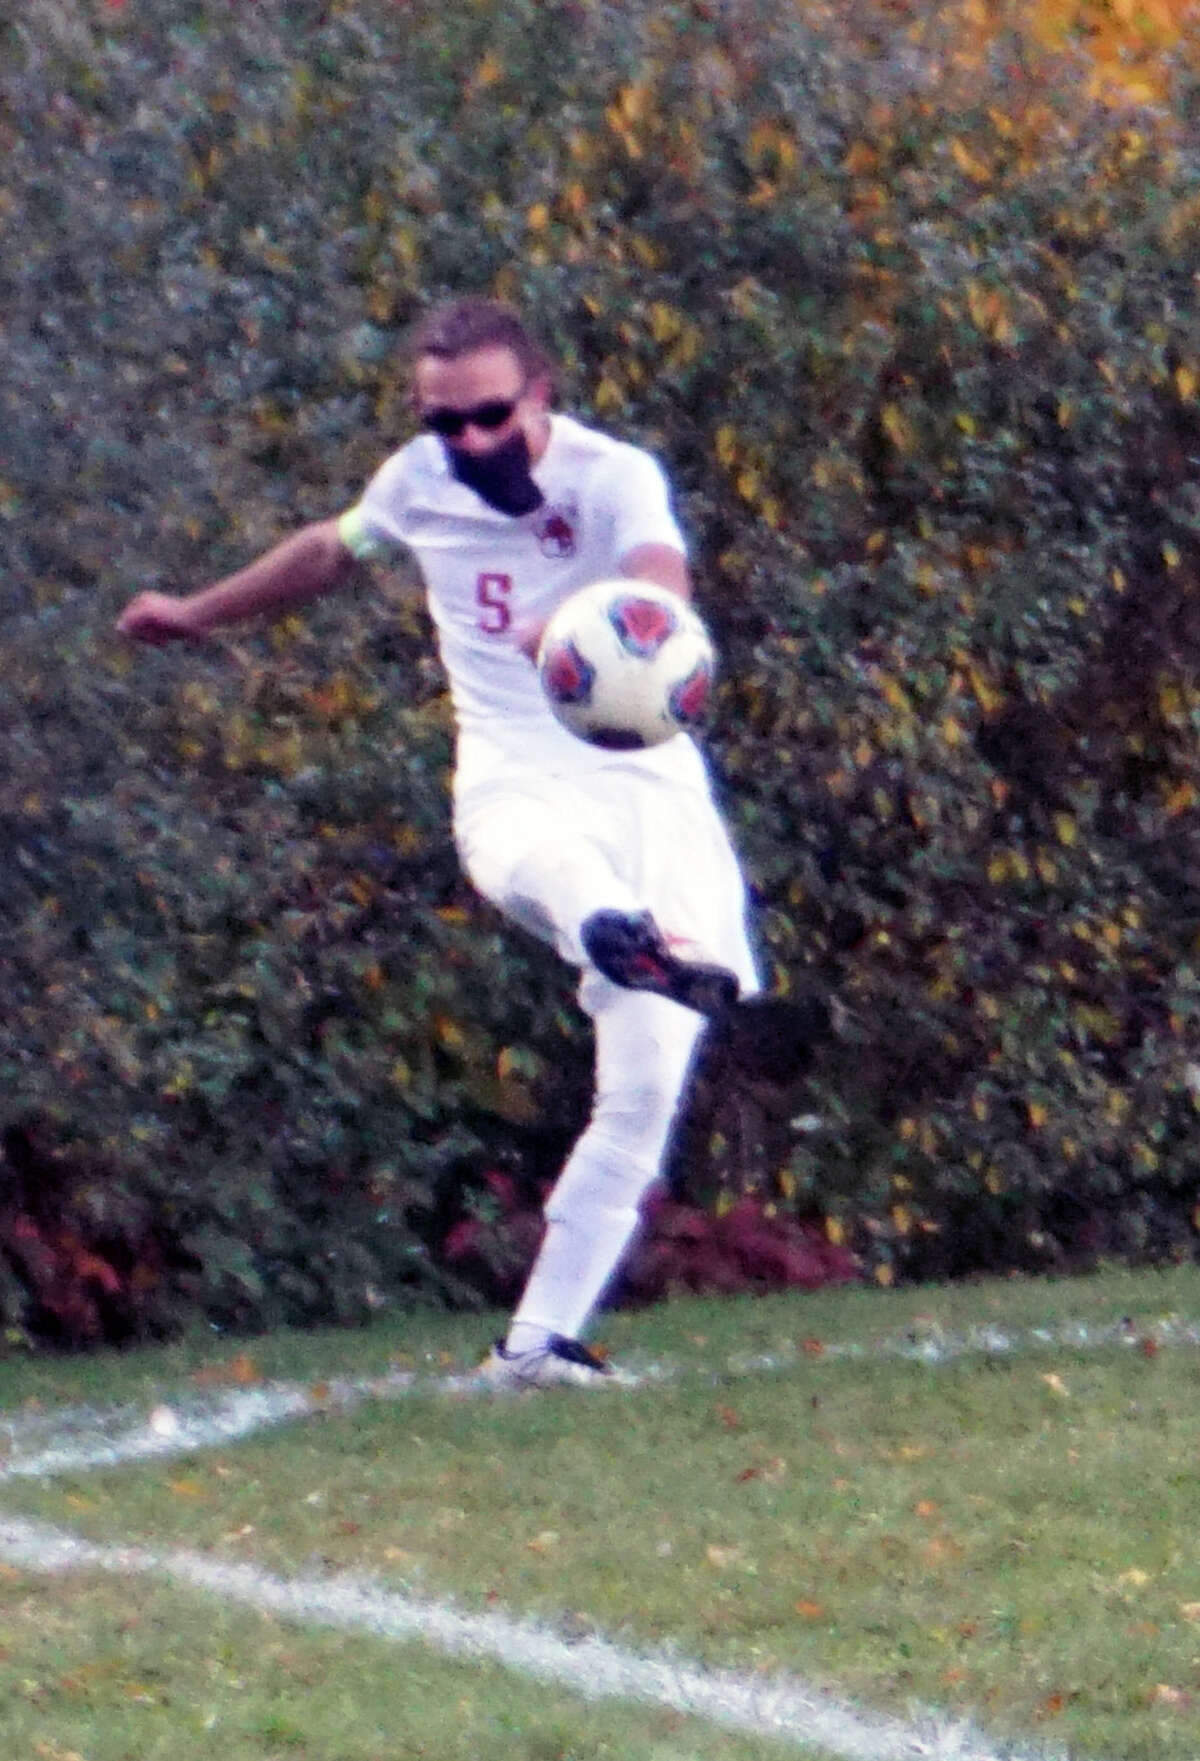 The Big Rapids boys soccer team finished the regular season at home on Thursday night with a 4-0 shutout over the rival Reed City Coyotes.